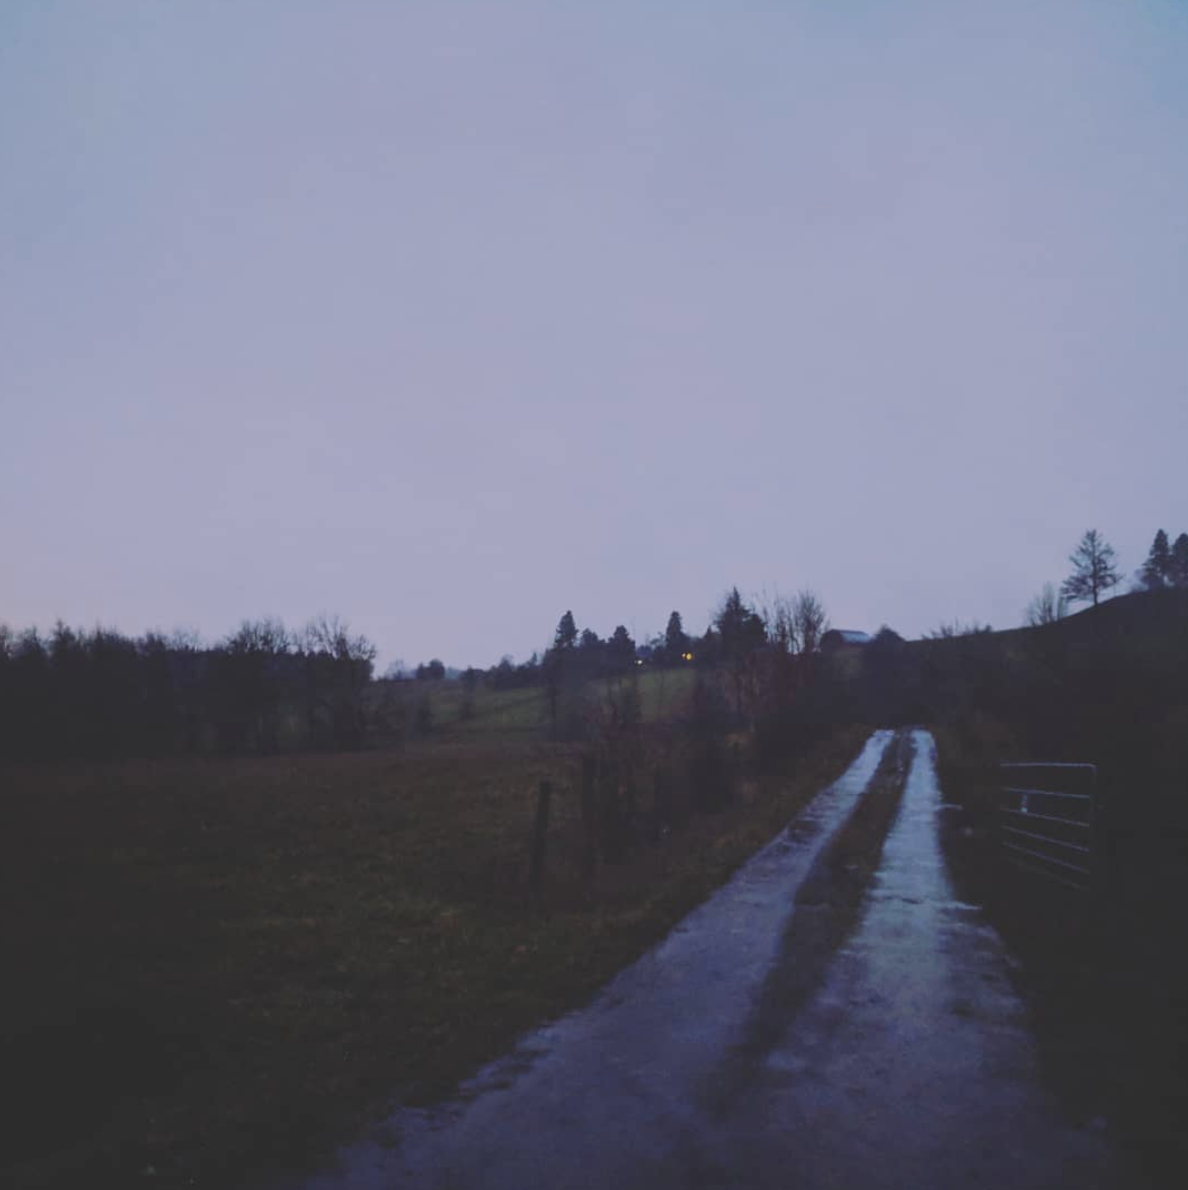 Rain-soaked gravel drive with purple sky and sodden fields all around.